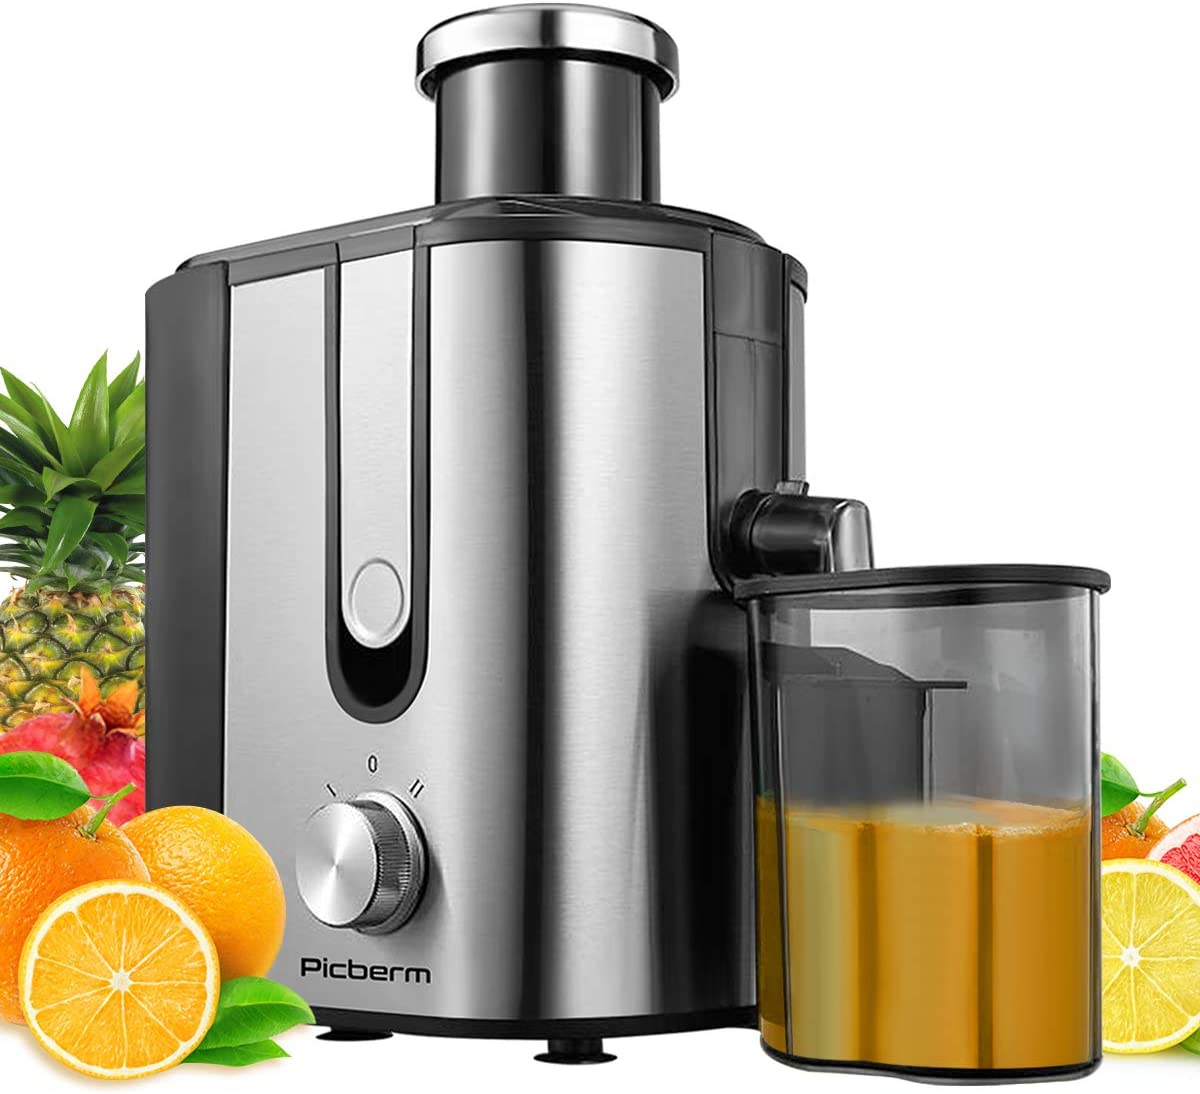 Juicer, Picberm Centrifugal Juicer Machines Easy to Clean, Wide Feed Chute Juice Extractor with Brush & Recipes for Fruits and Vegetables, Dual Speed Stainless Steel BPA-Free Anti-drip Juicers Dishwasher Safe, 600 W